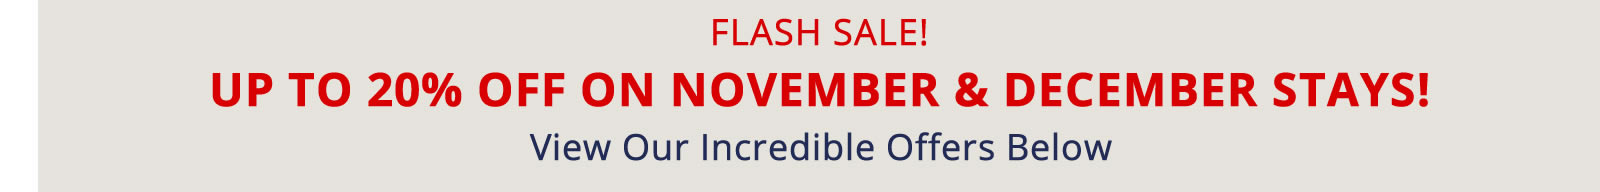 FLASH SALE! UP TO 20% OFF ON NOVEMBER STAYS!